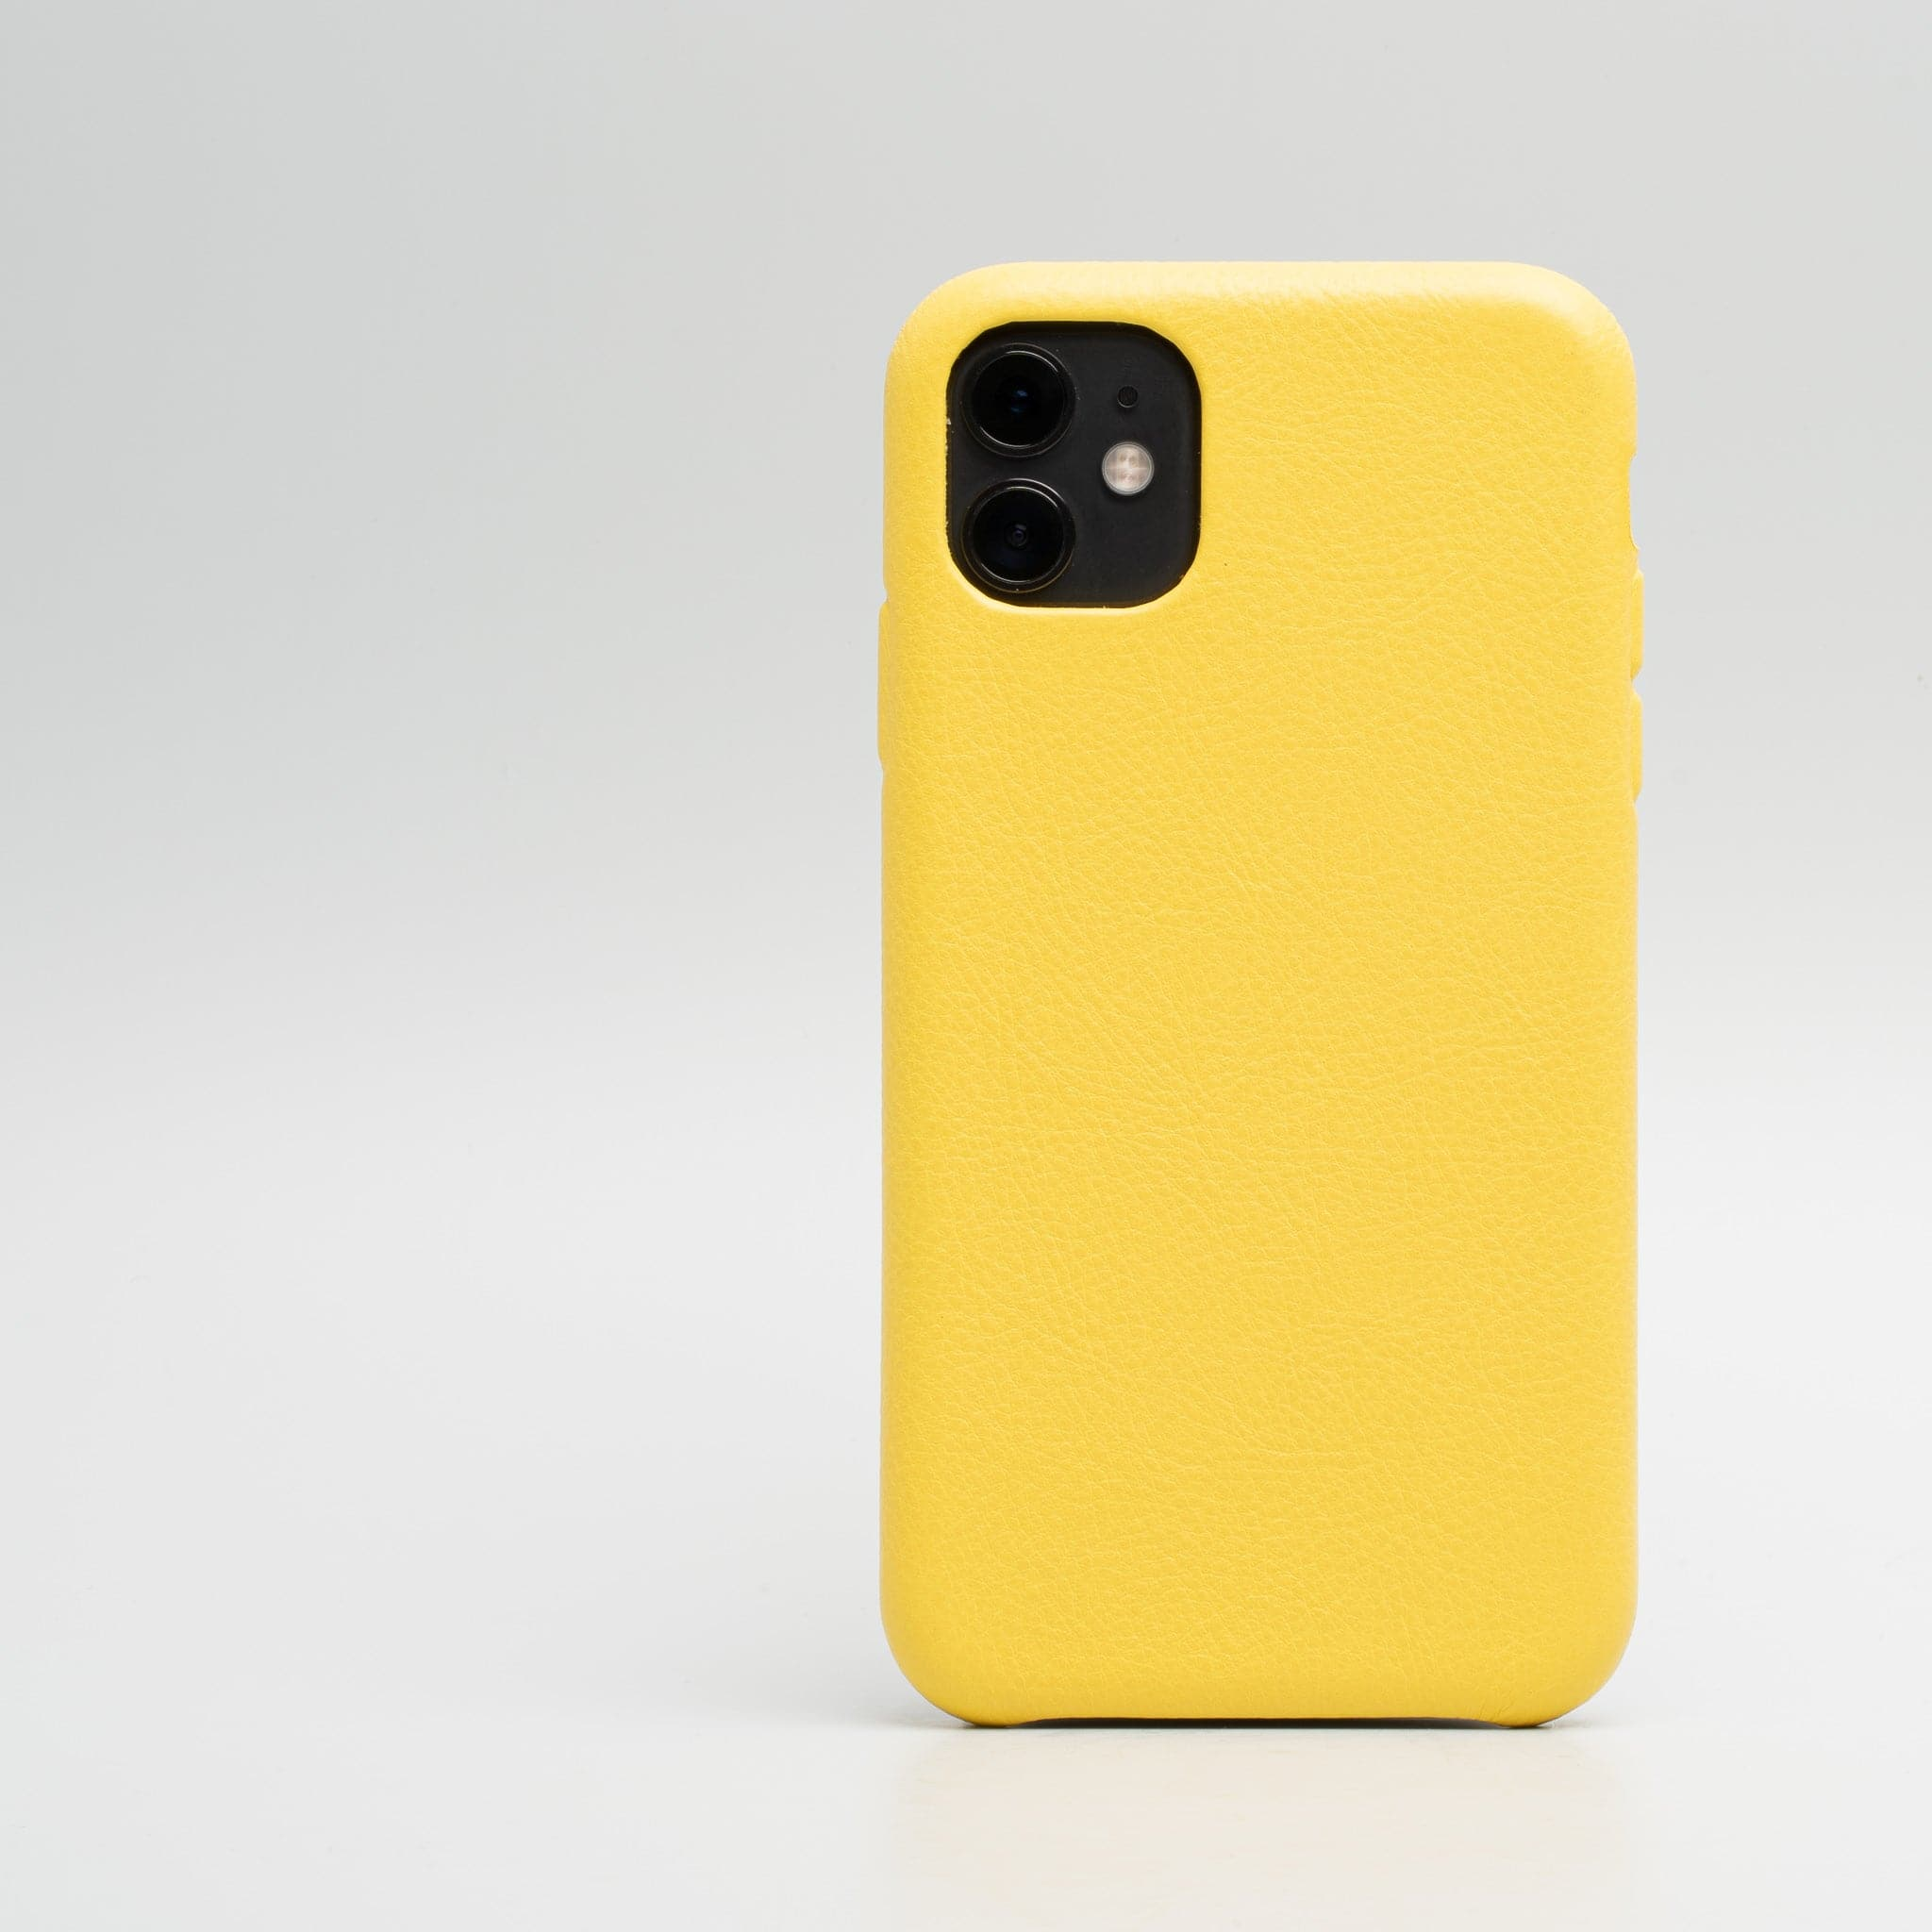 Cuir jaune iPhone 11 cas